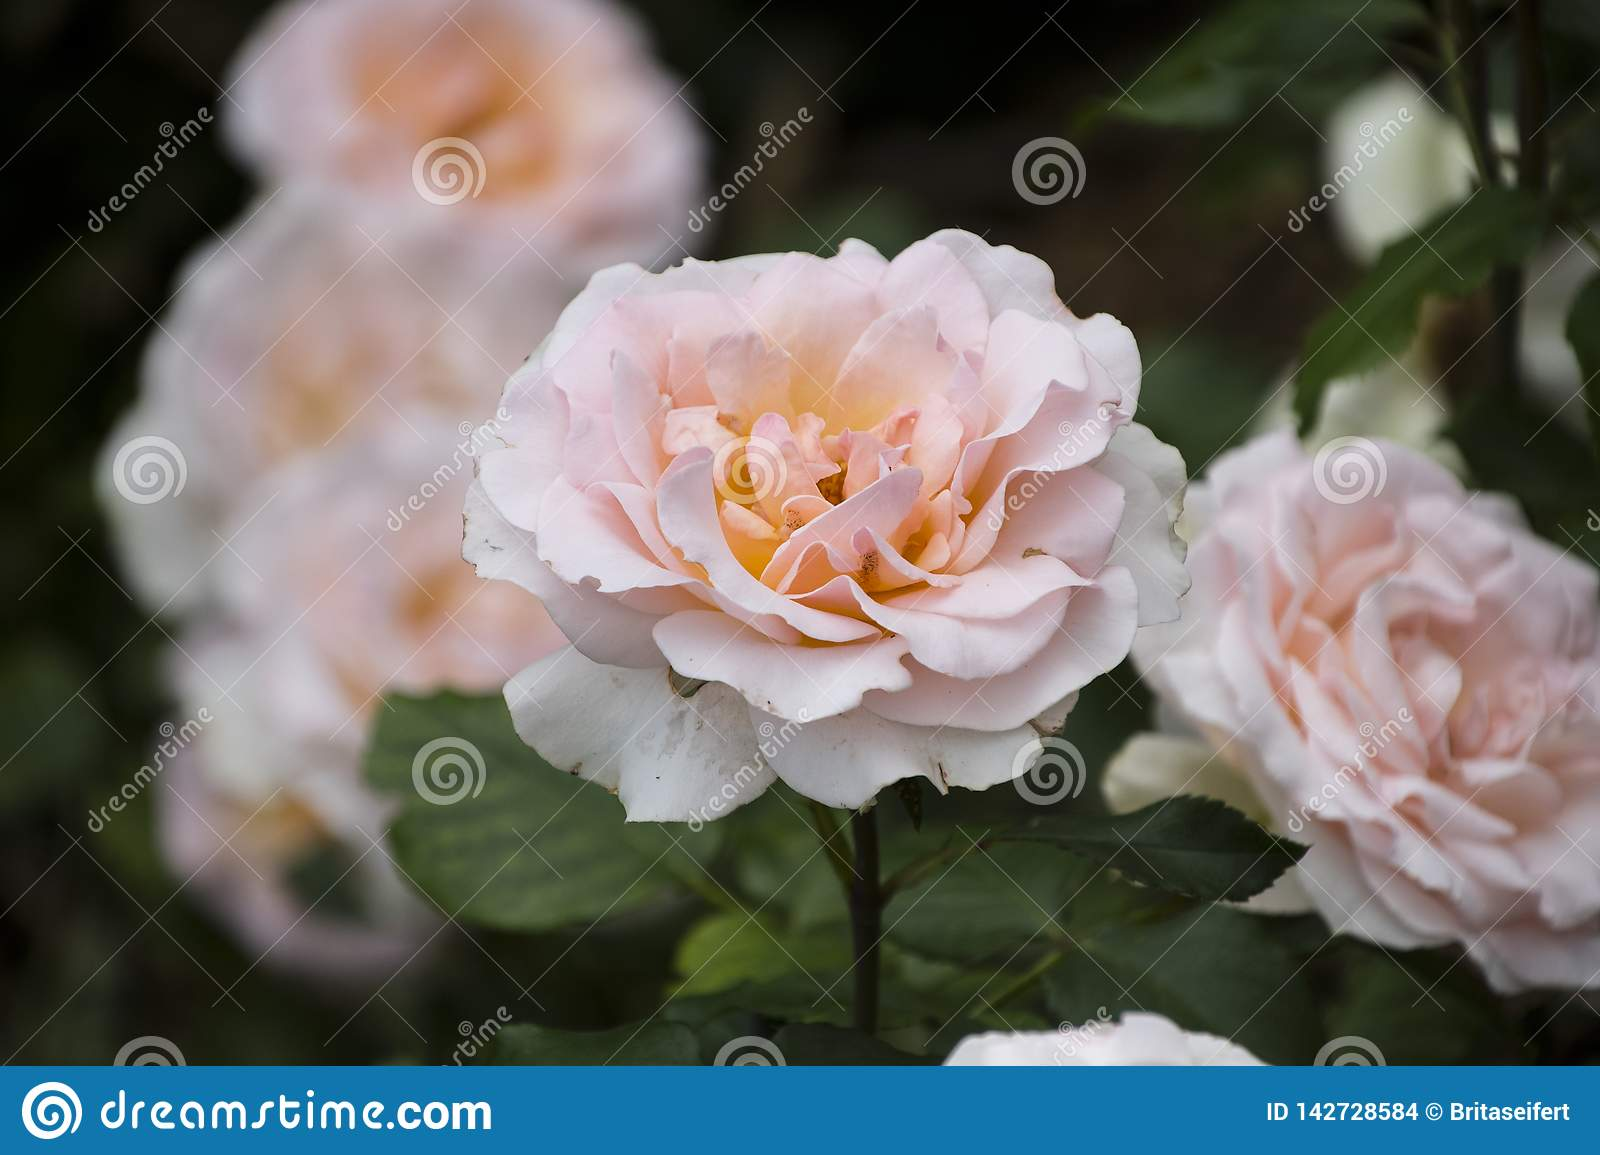 Rose flower closeup. Shallow depth of field. Spring flower of white rose stock images